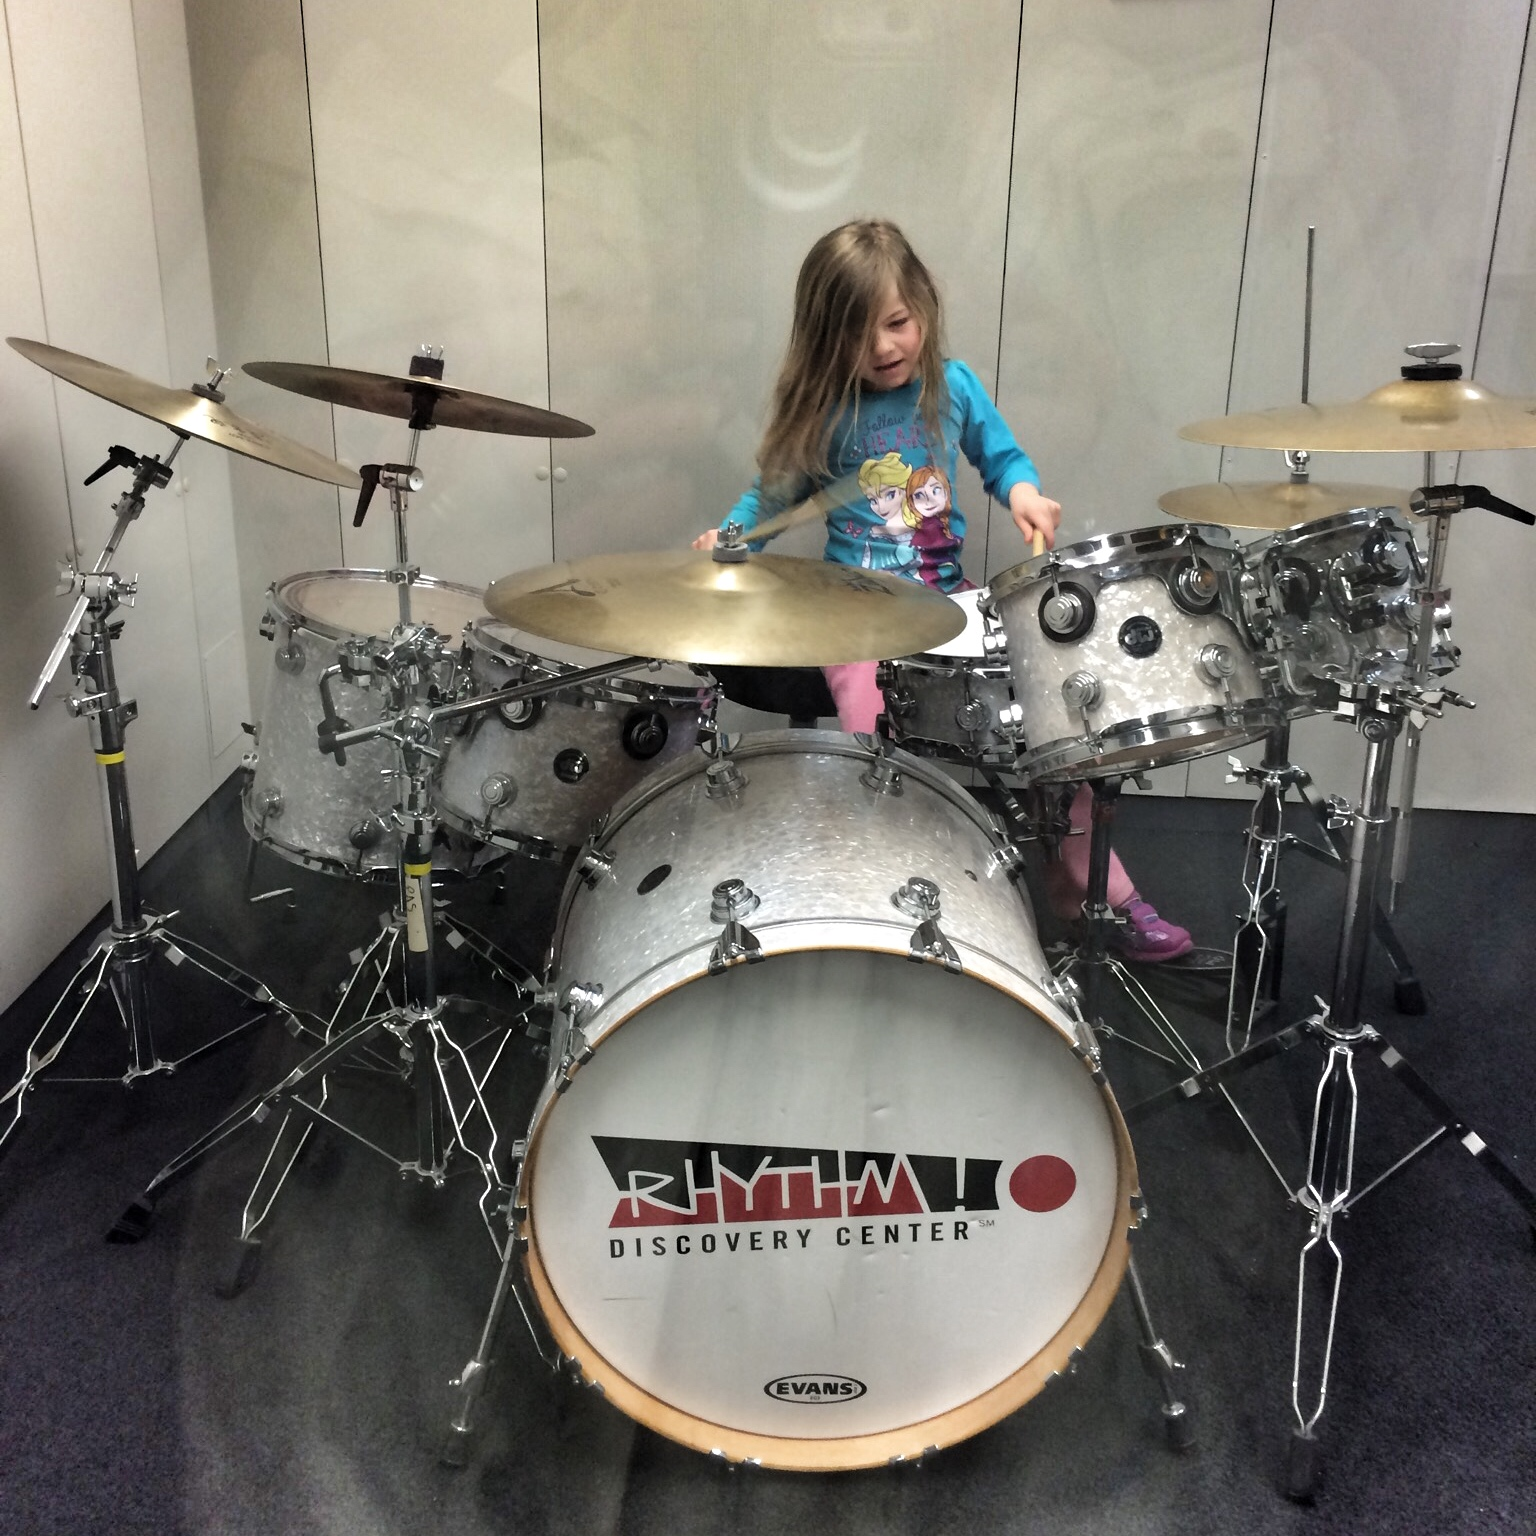 things to do with kids in indianapolis Rhythm Discovery Center